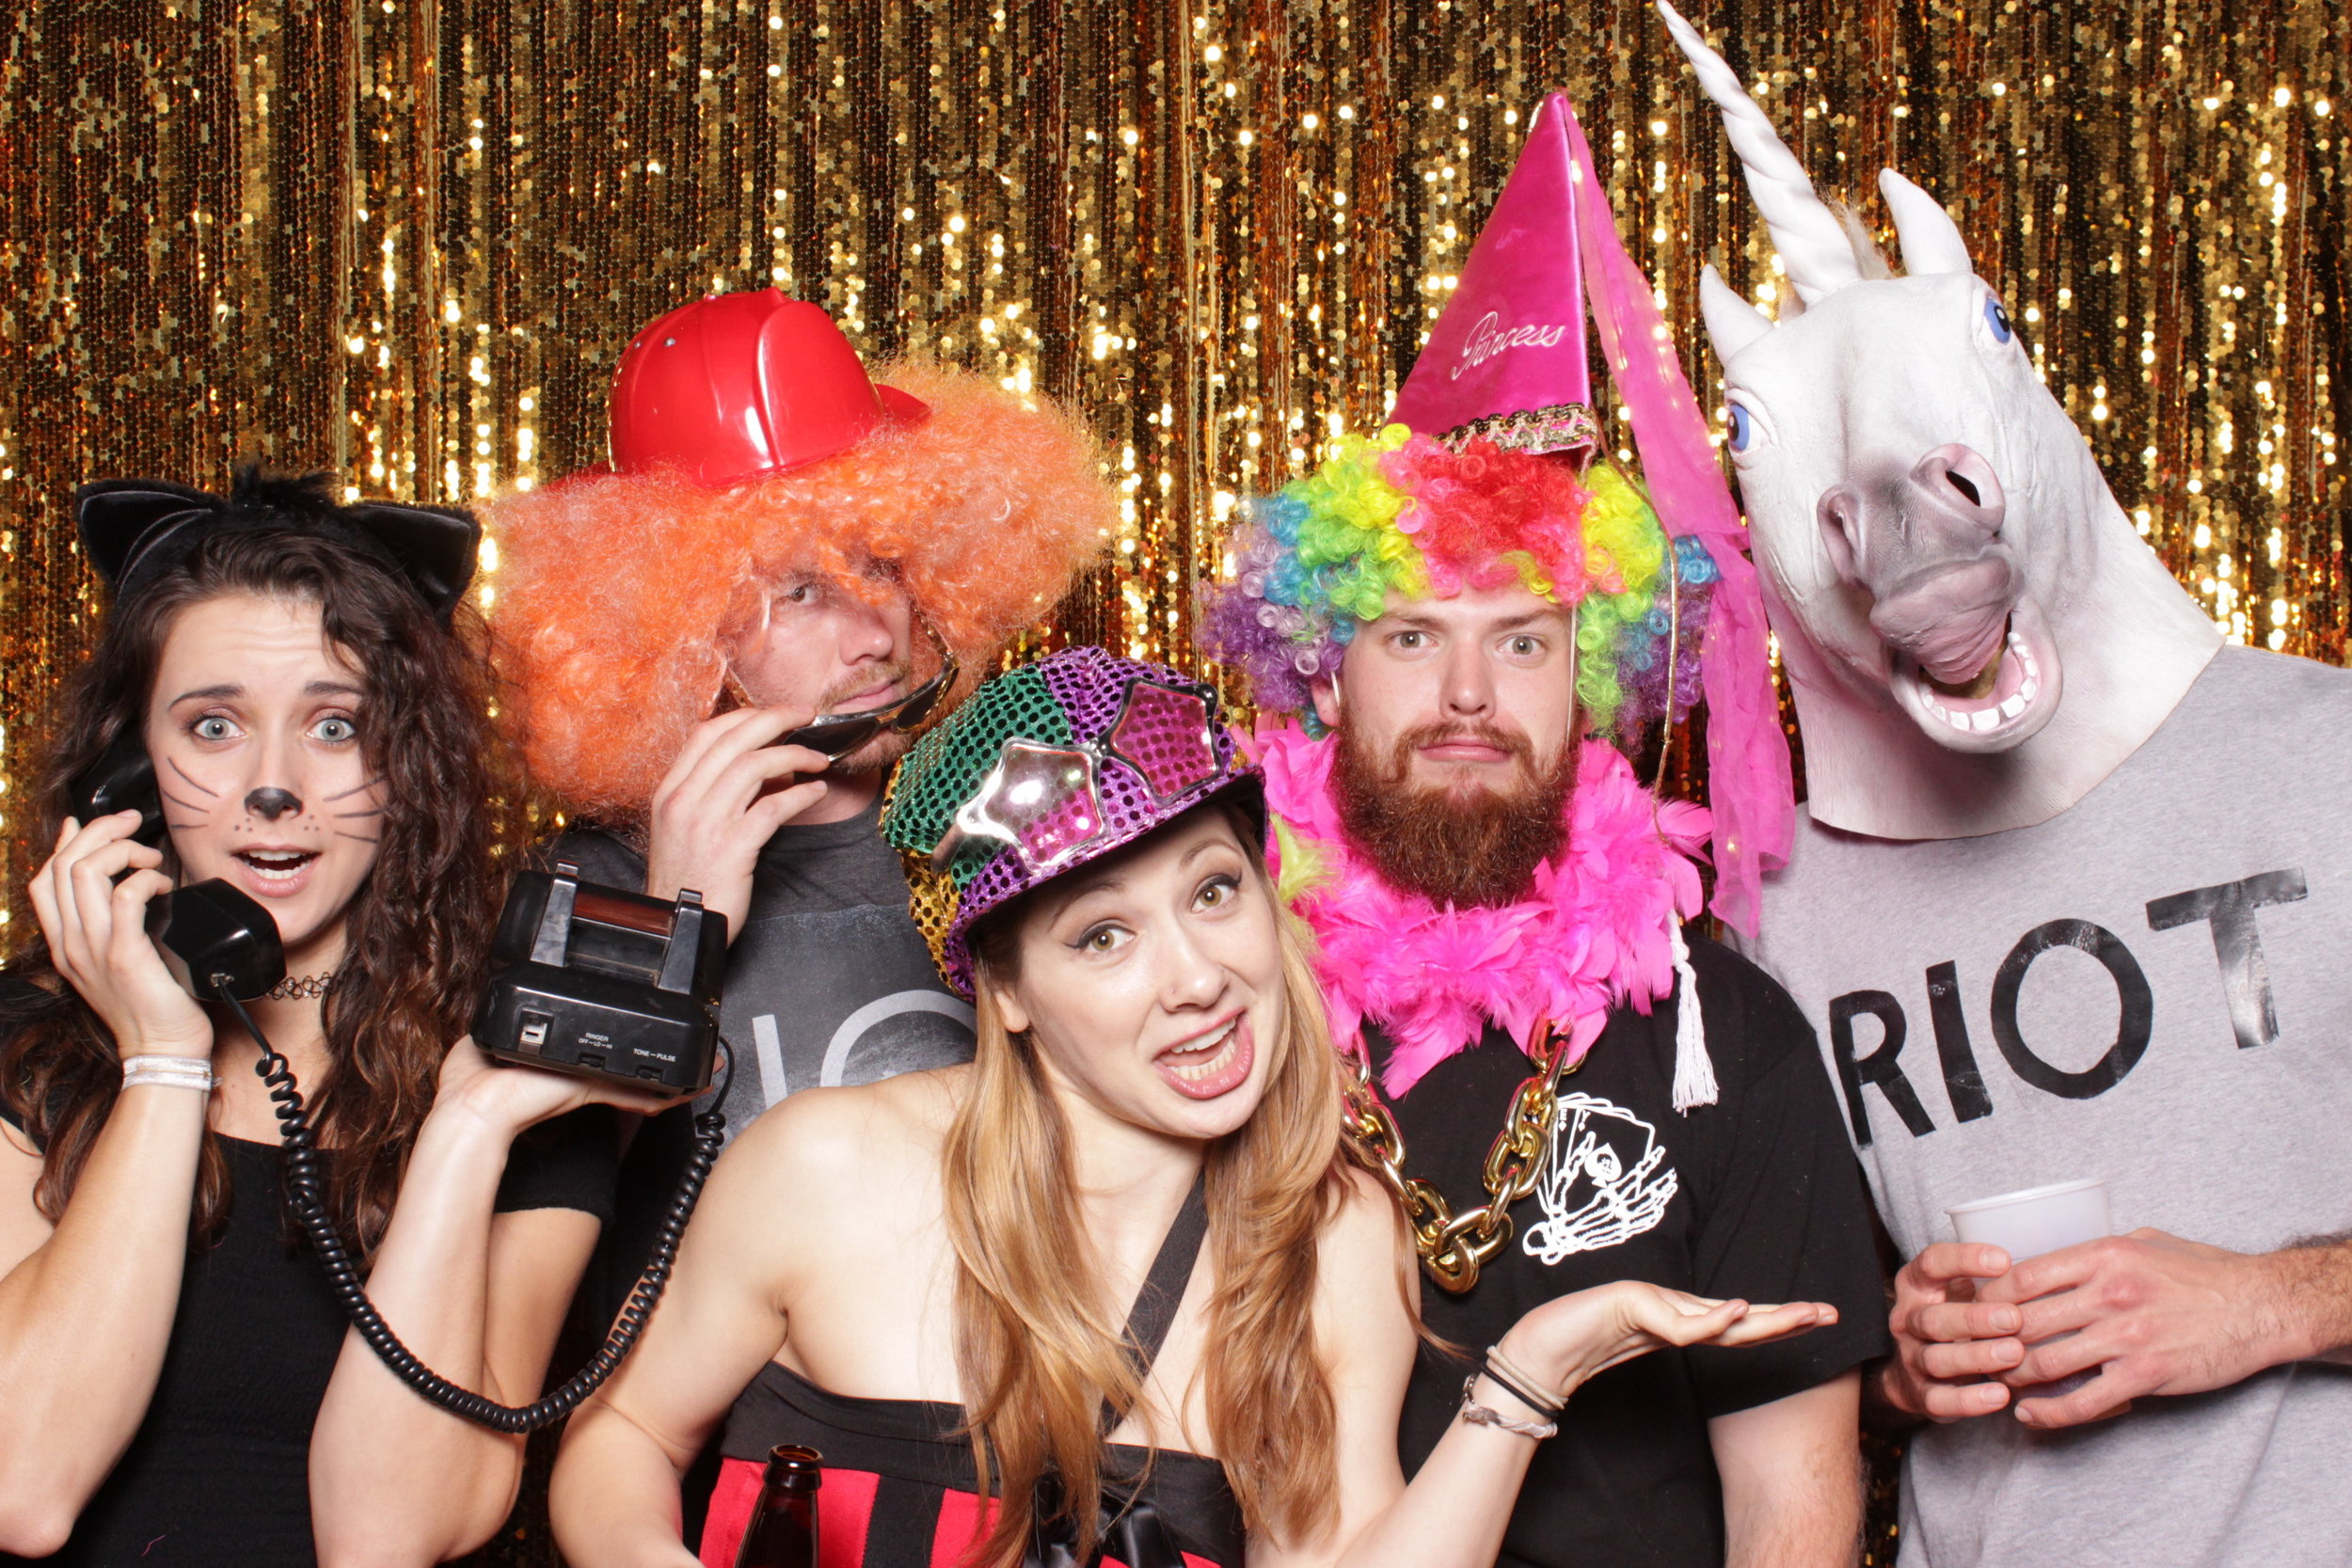 Chico-photo-booth-rental-fast